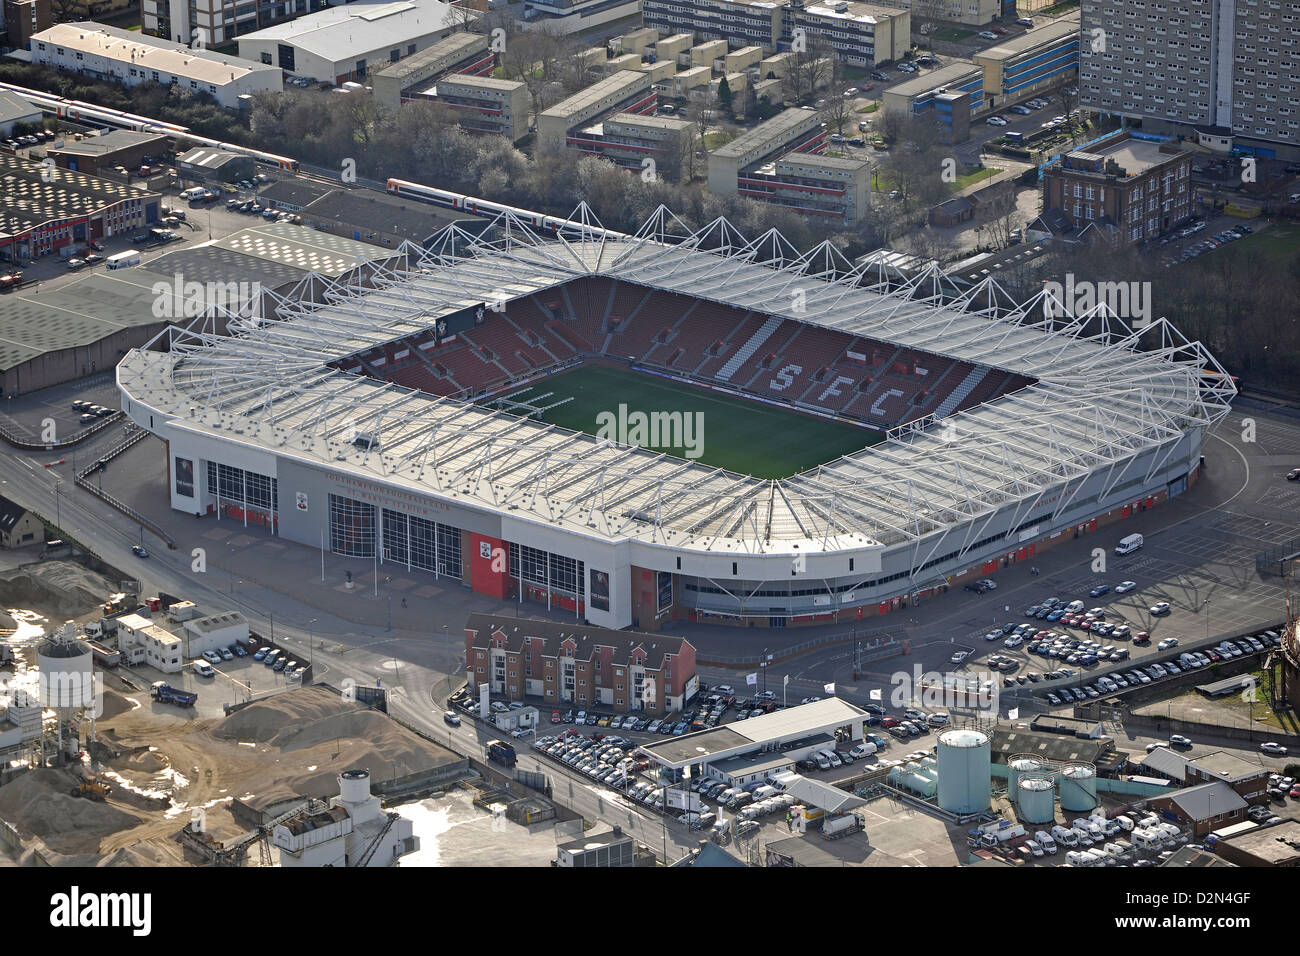 Aerial photograph of Southampton Football Club - Stock Image